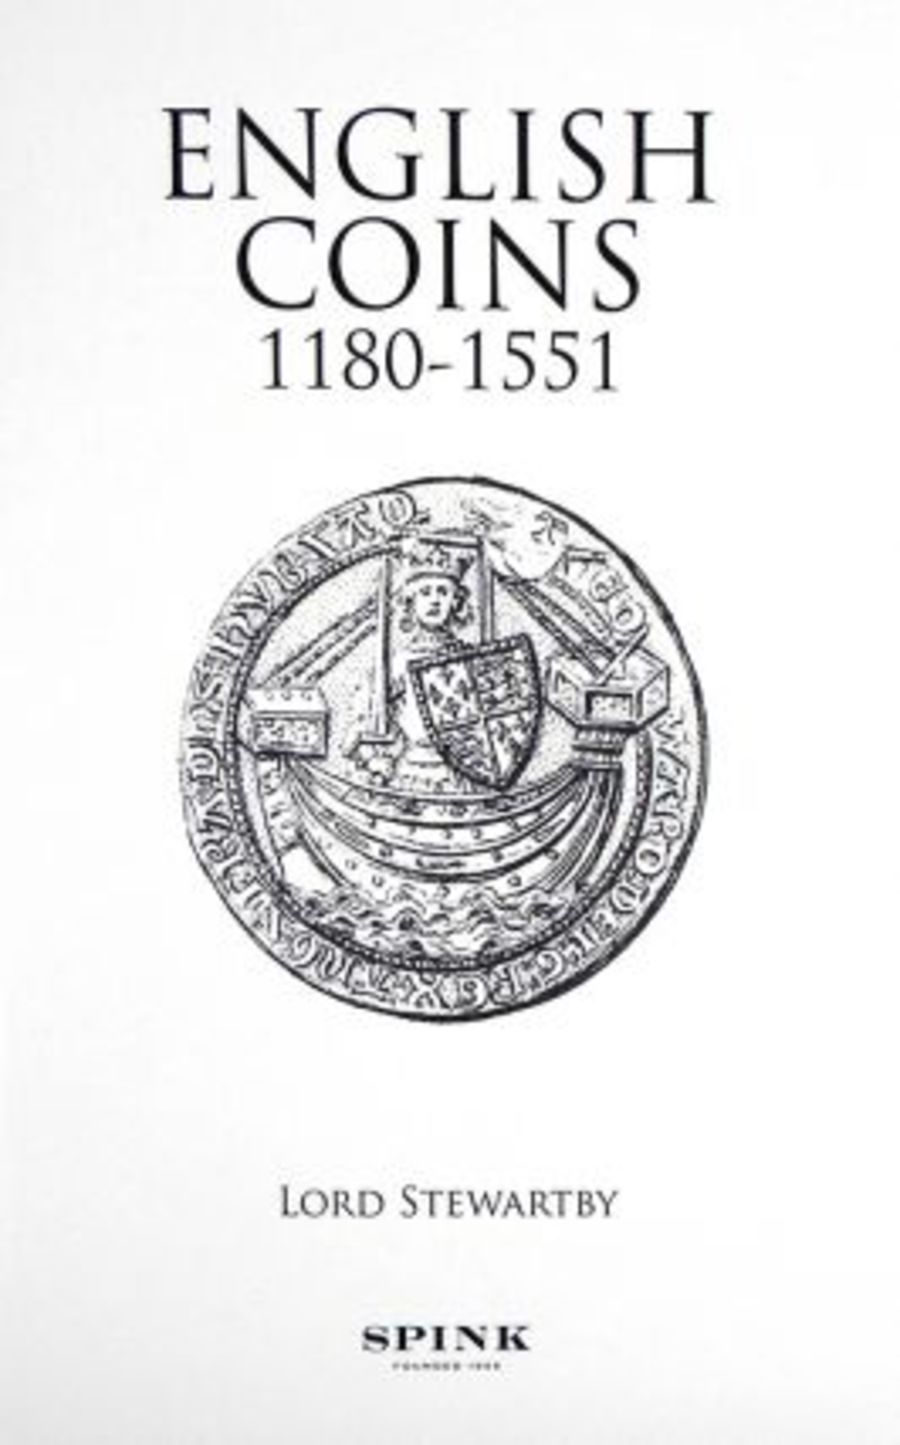 English coins 1180-1551. London, 2009, Stewartby, Lord.